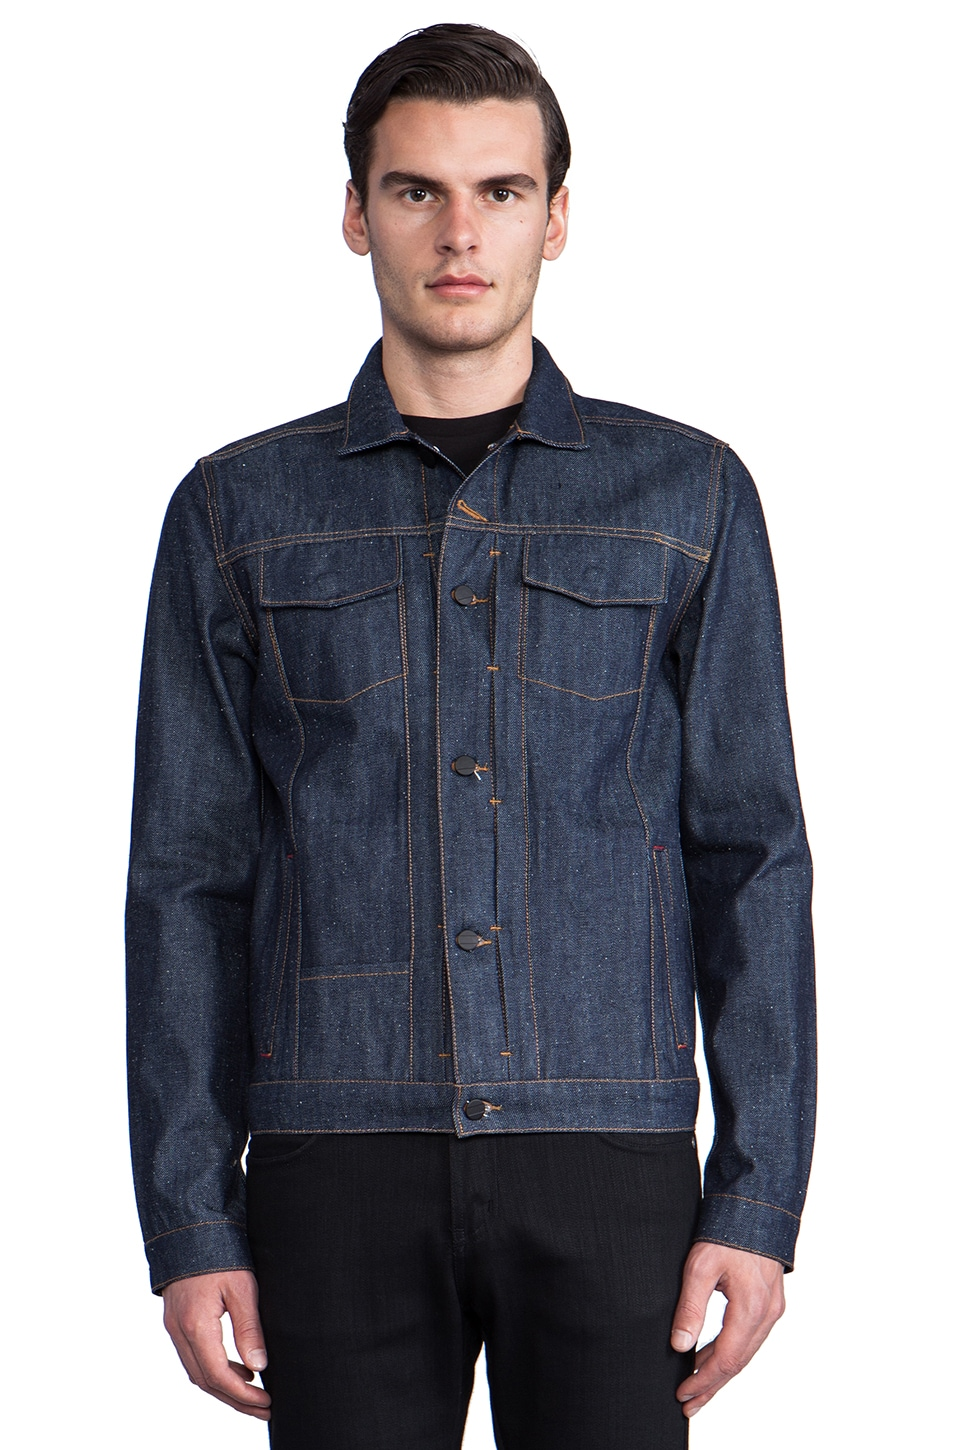 COMUNE Jay Denim Jacket in Indigo Picked